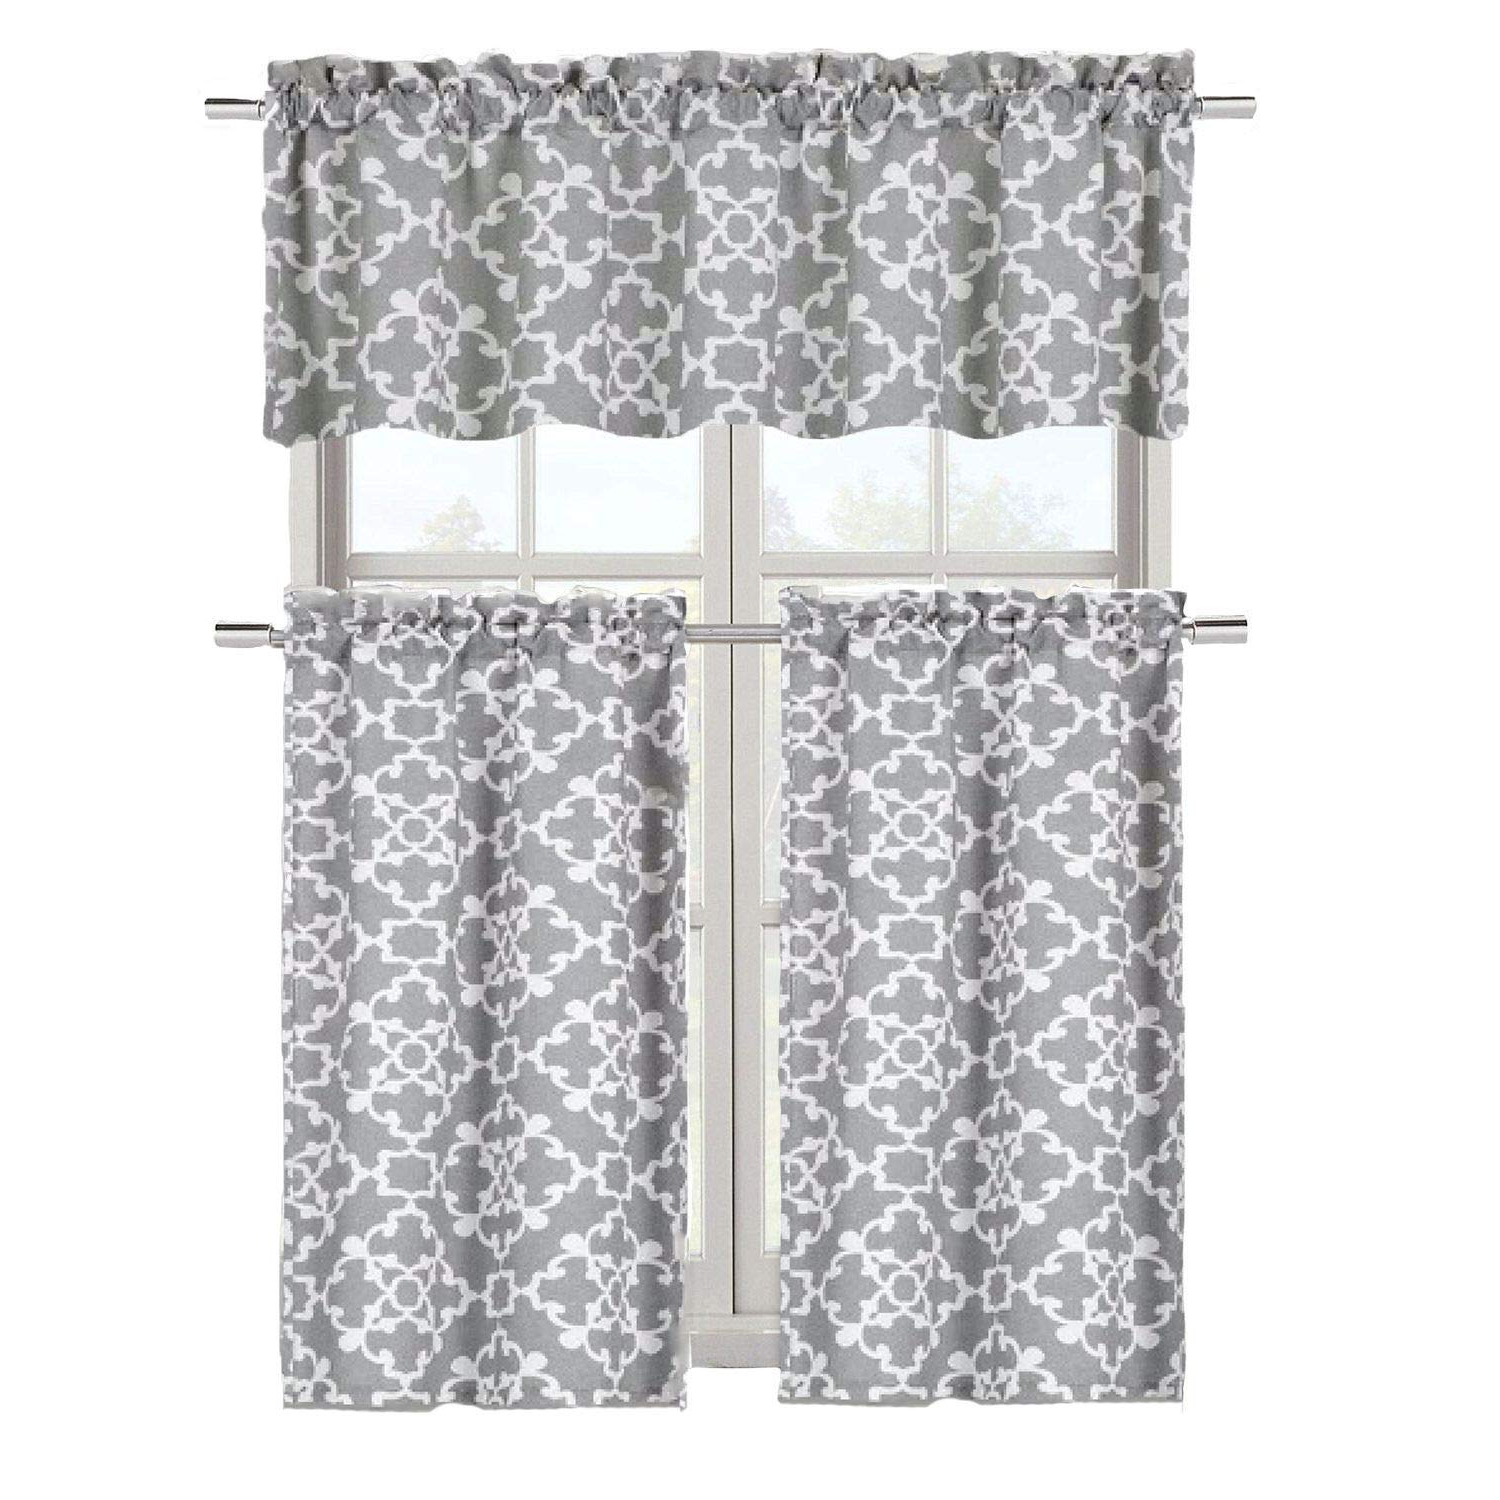 Most Popular Goodgram Ultra Luxurious Grey Shabby 3 Piece Kitchen Curtain Tier & Valance Set By In Microfiber 3 Piece Kitchen Curtain Valance And Tiers Sets (View 17 of 20)